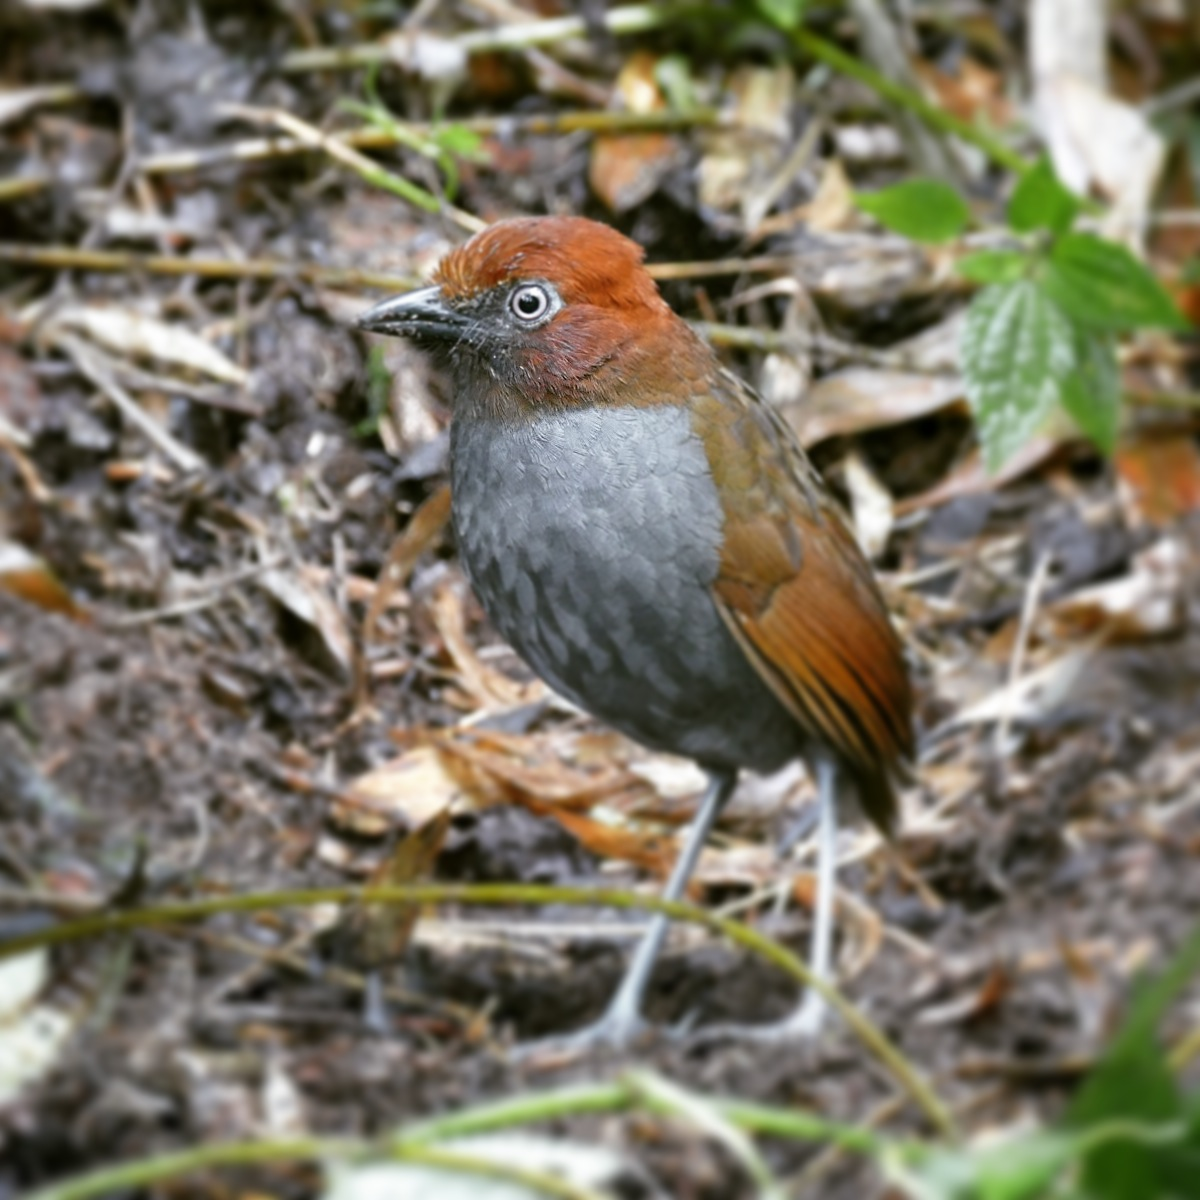 A Chestnut-naped Antpitta hops out of the bushes for its daily worms. Noah Strycker